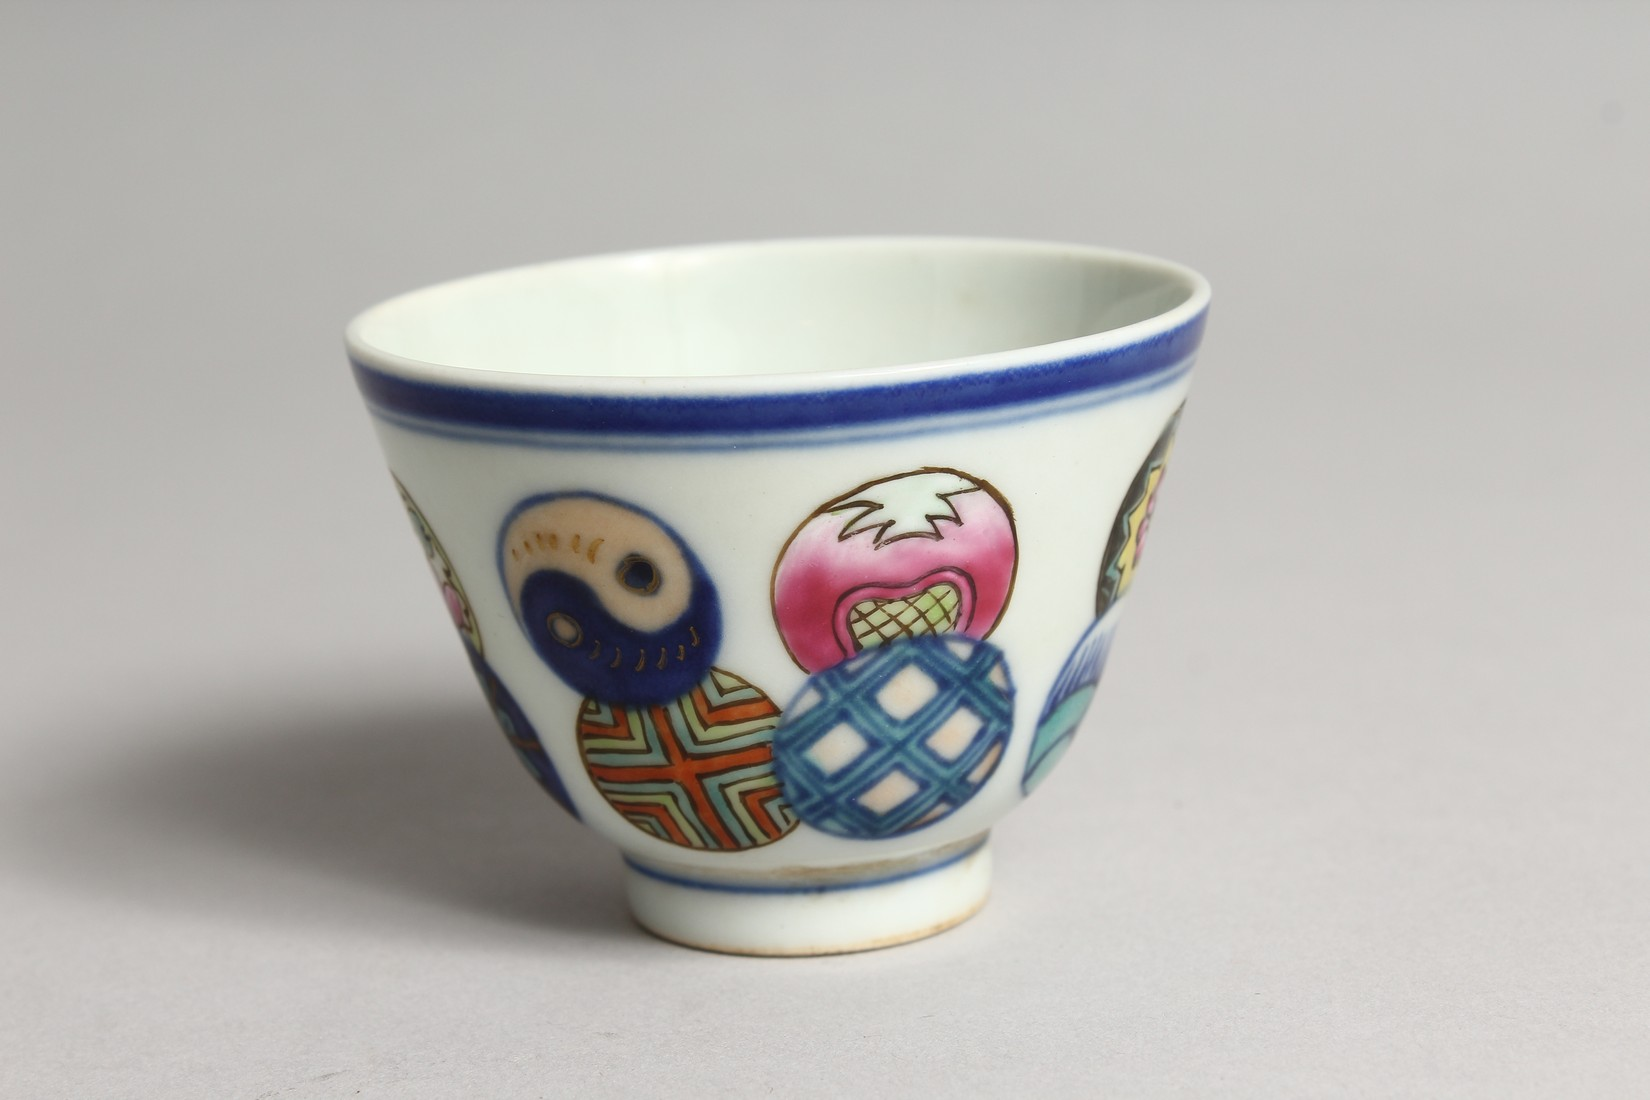 A SMALL CHINESE PORCELAIN RICE BOWL 2.75ins diameter. - Image 3 of 5